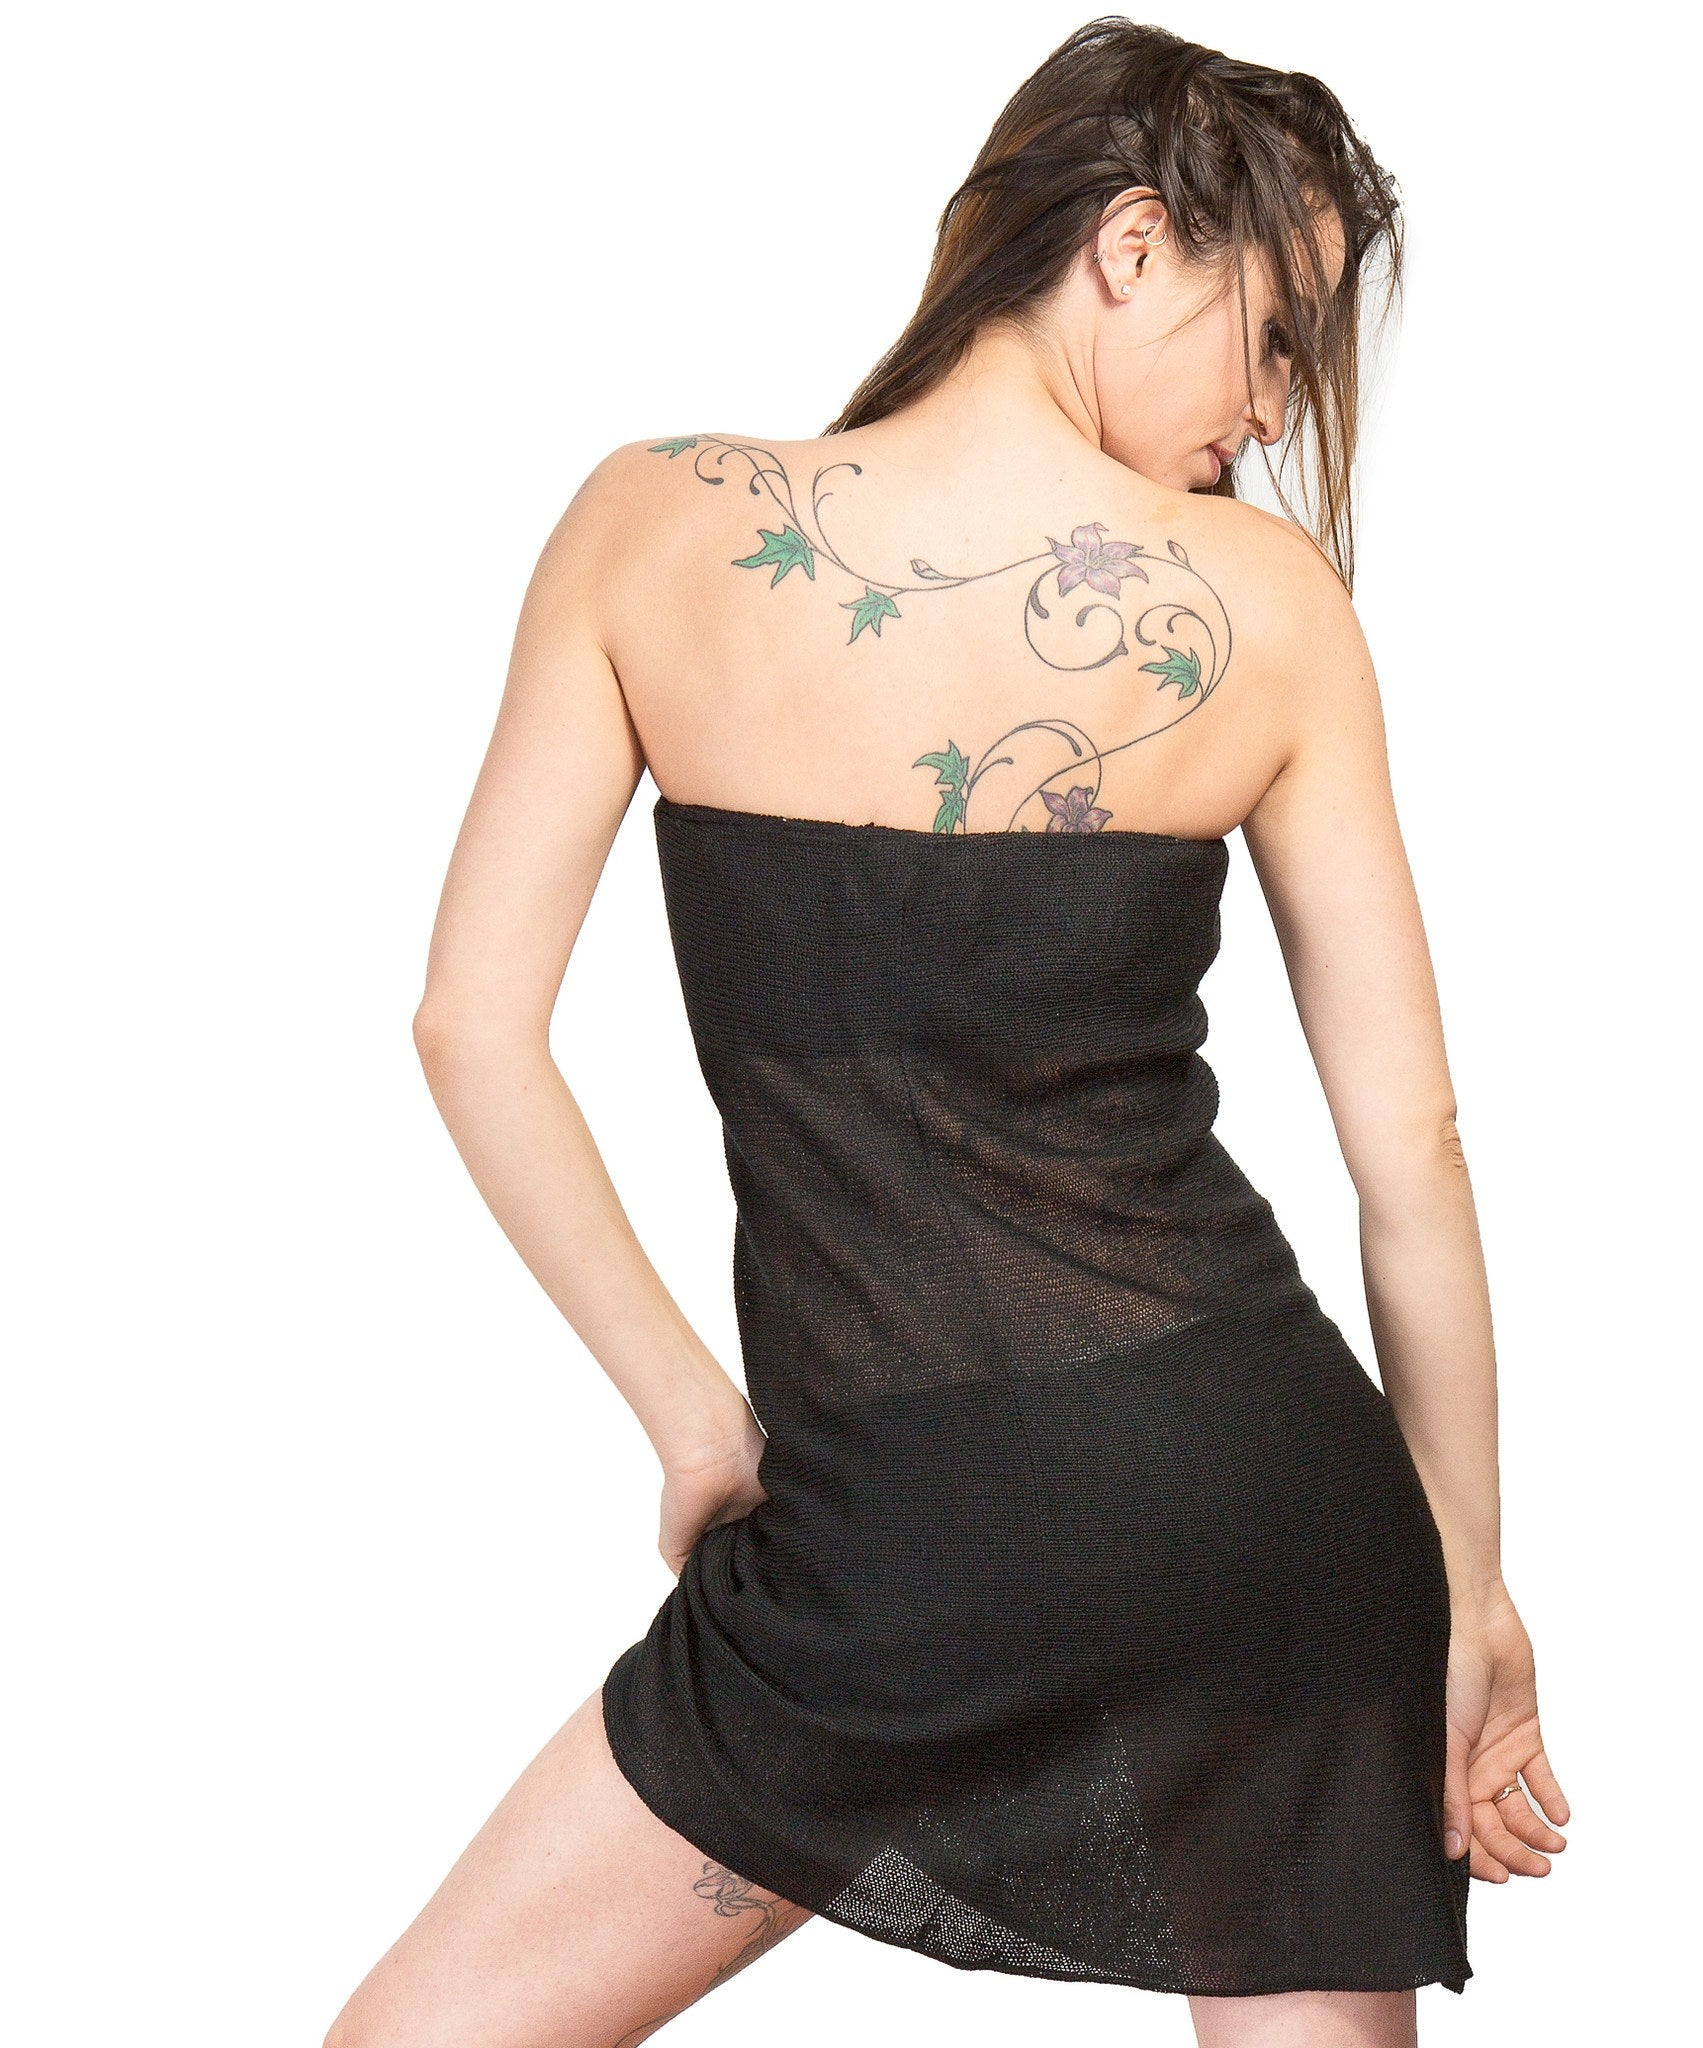 Sexy Sheer Bare Shoulder Mesh Dress by KD dance New York Made In USA @KDdanceNewYork #MadeInUSA - 6